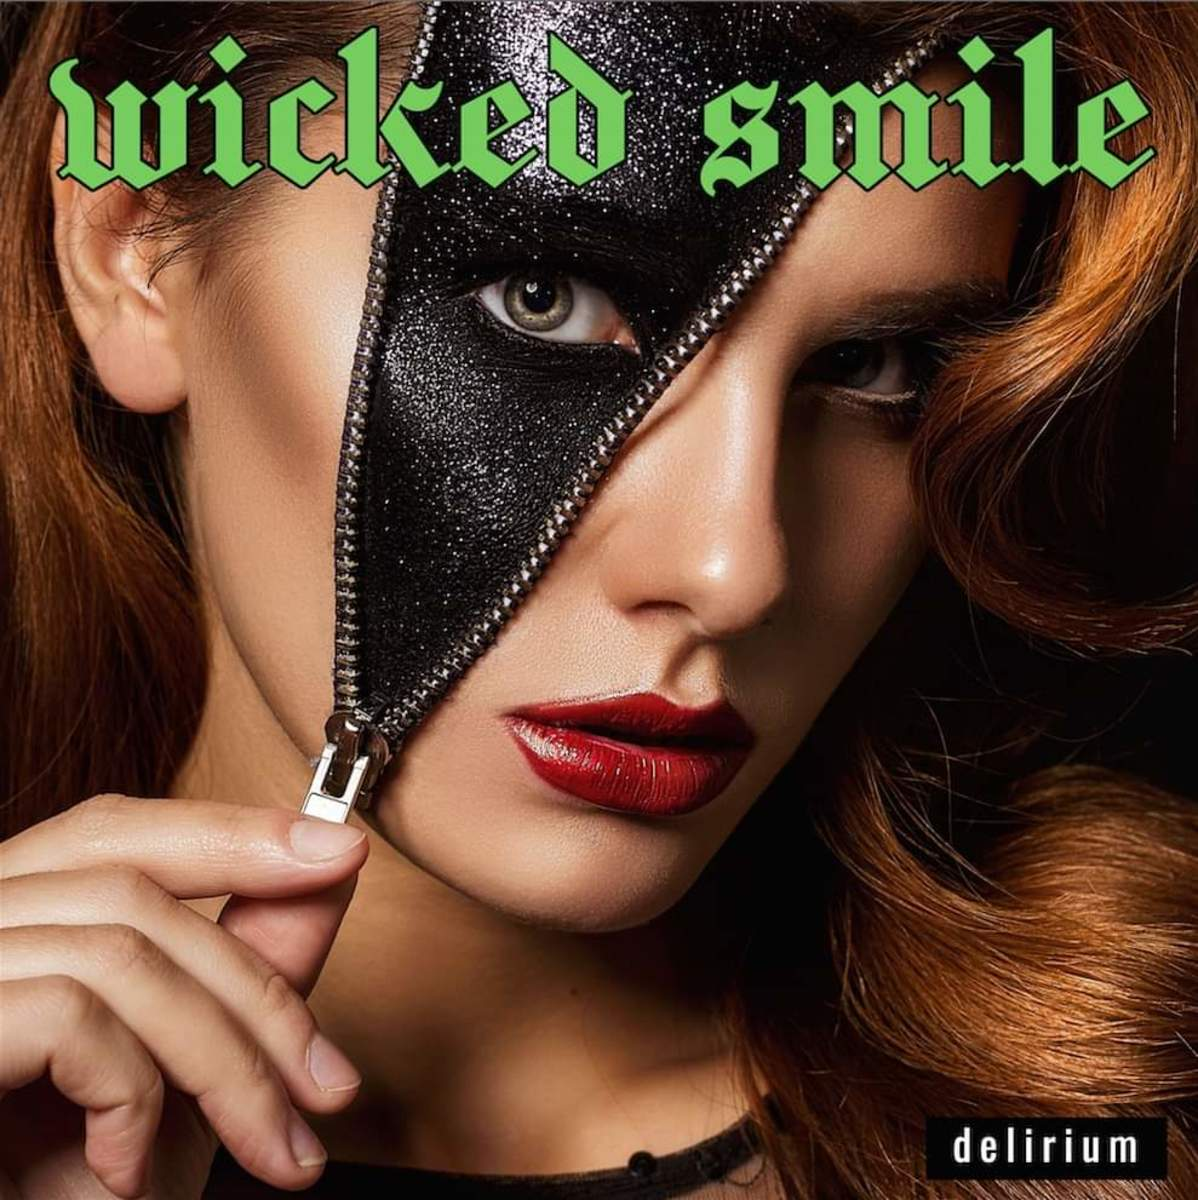 """Aussie Metal Band Wicked Smile to Release """"Delirium"""" EP July 1st"""